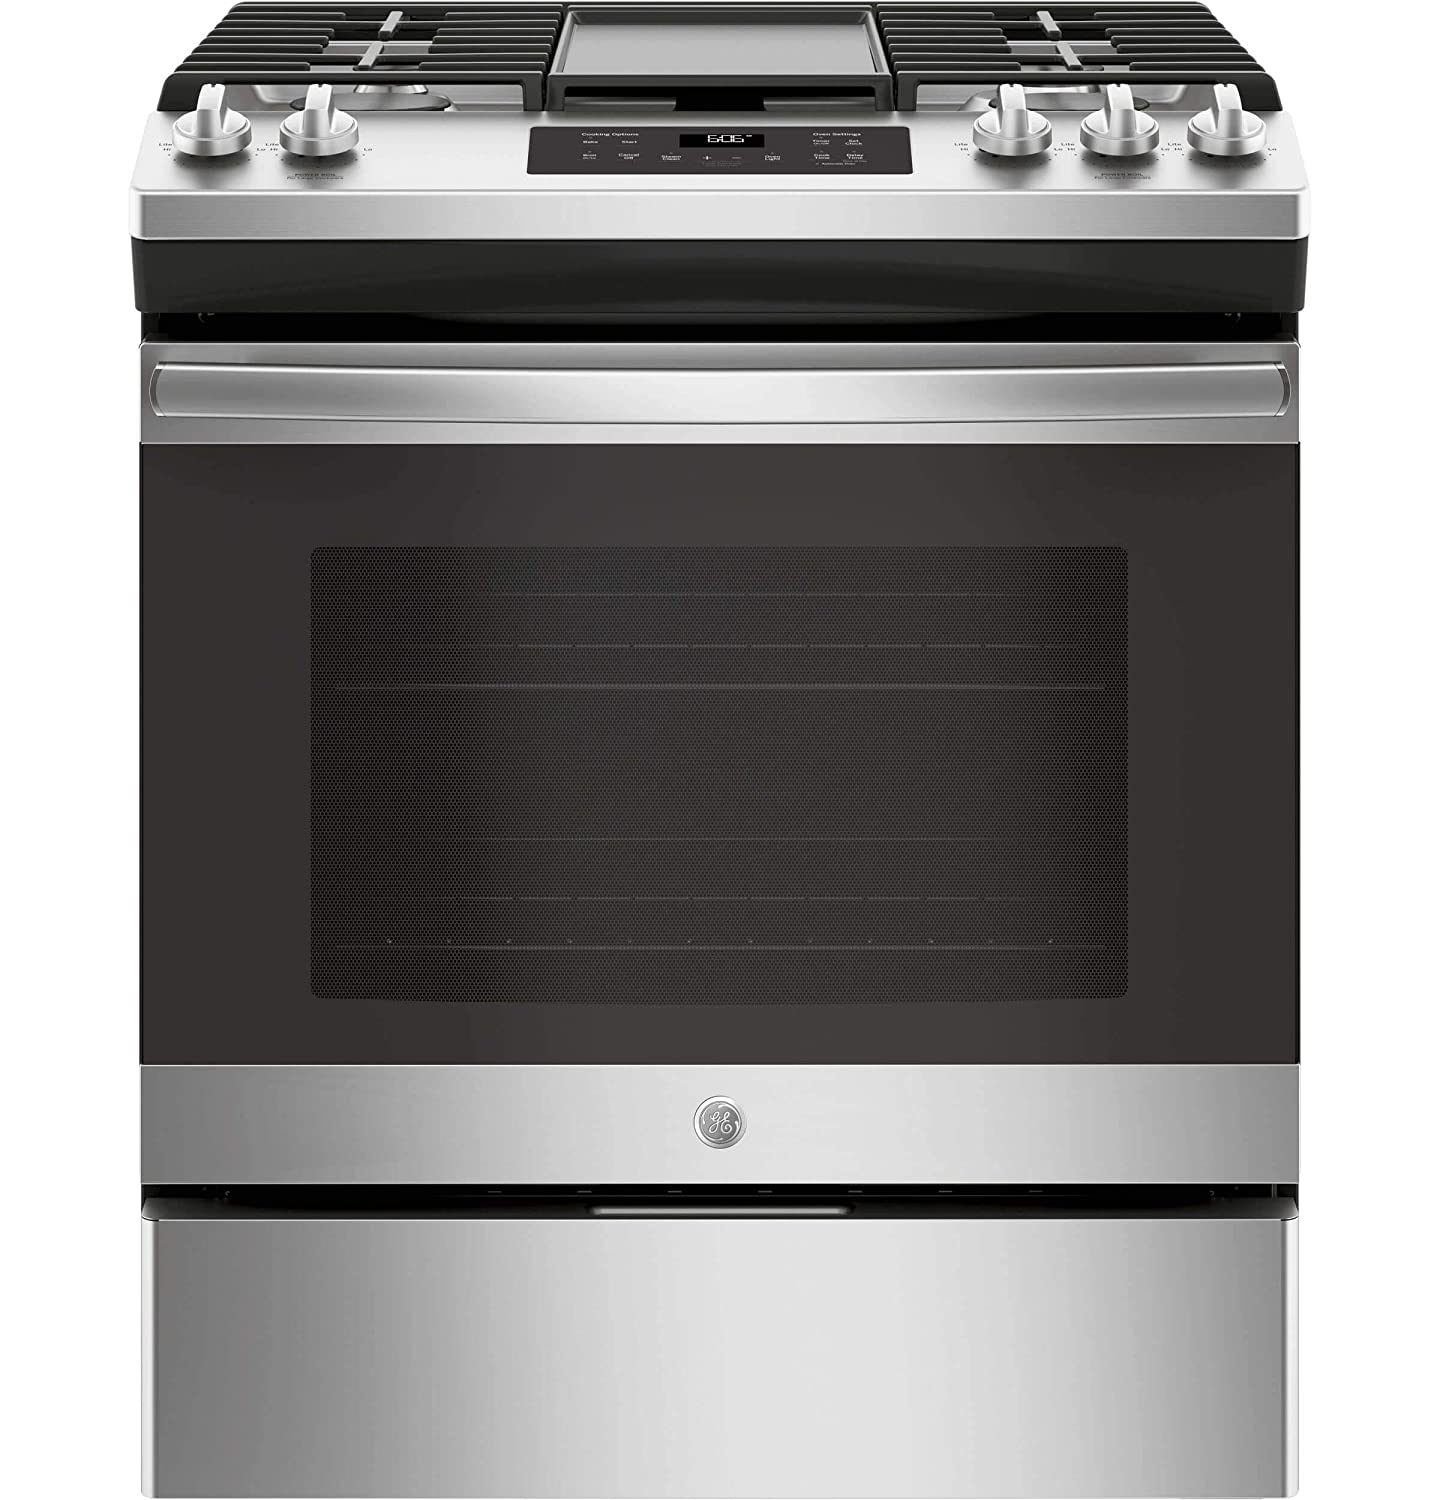 GE JGSS66SELSS 30 Inch Slide-in Gas Range with Sealed Burner Cooktop, 5.6 cu. ft. Primary Oven Capacity, in Stainless Steel (Certified Refurbished)